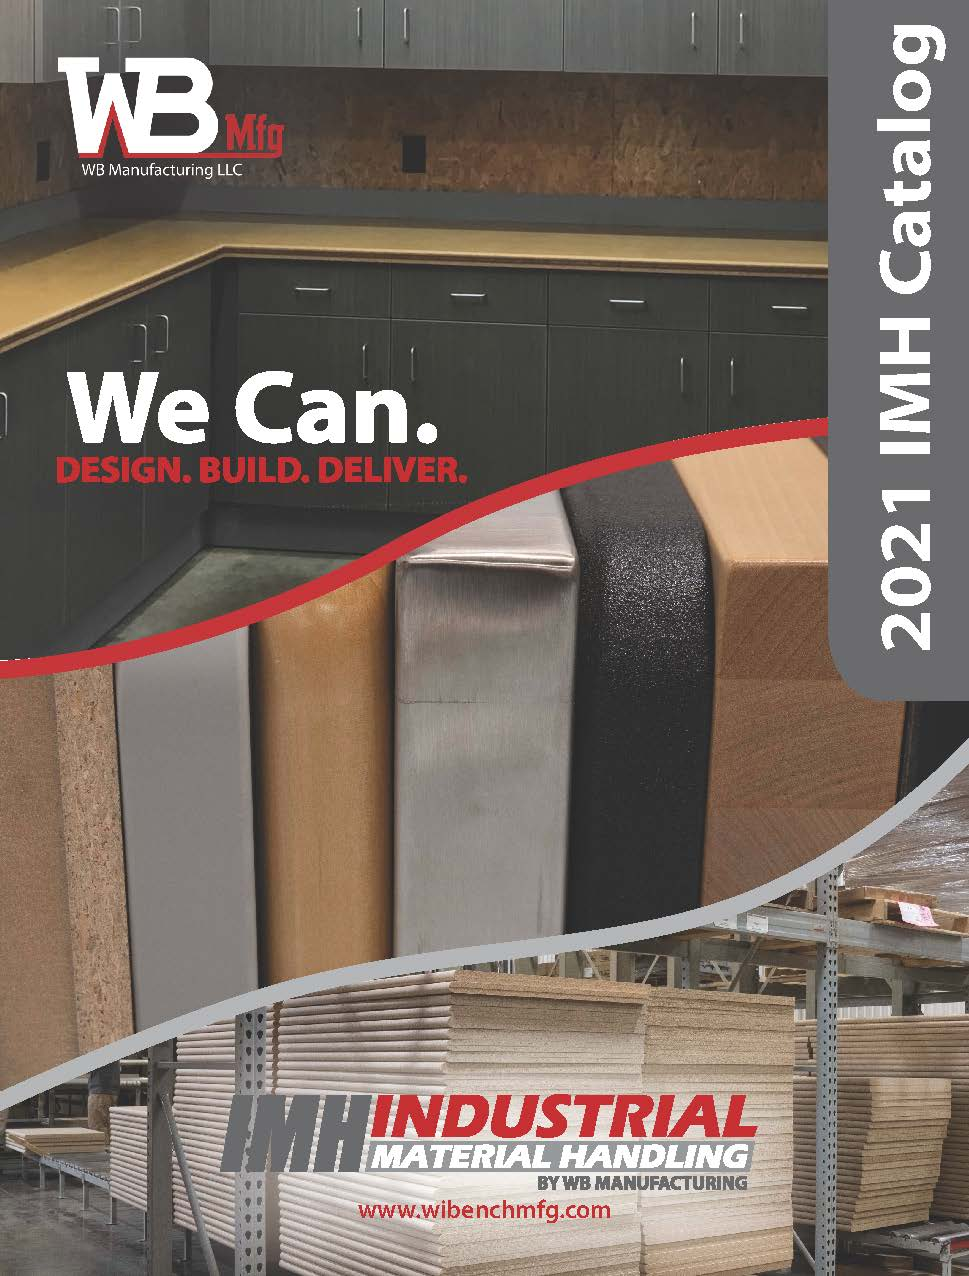 2021 WB Mfg IMH Catalog